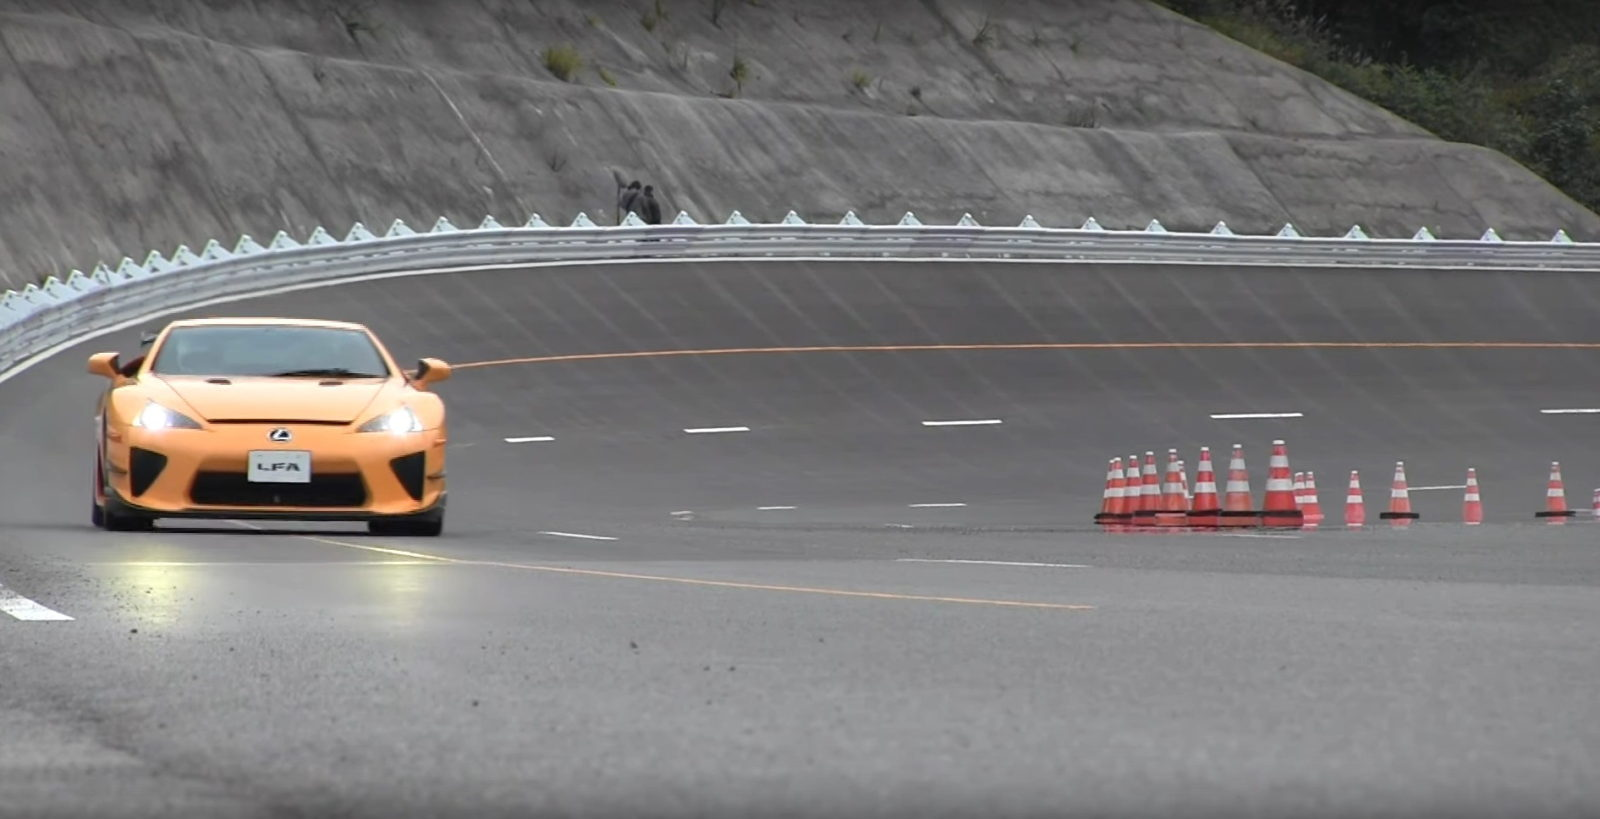 lexus-lfa-supercars-hit-the-track;-your-new-ringtone-is-here!